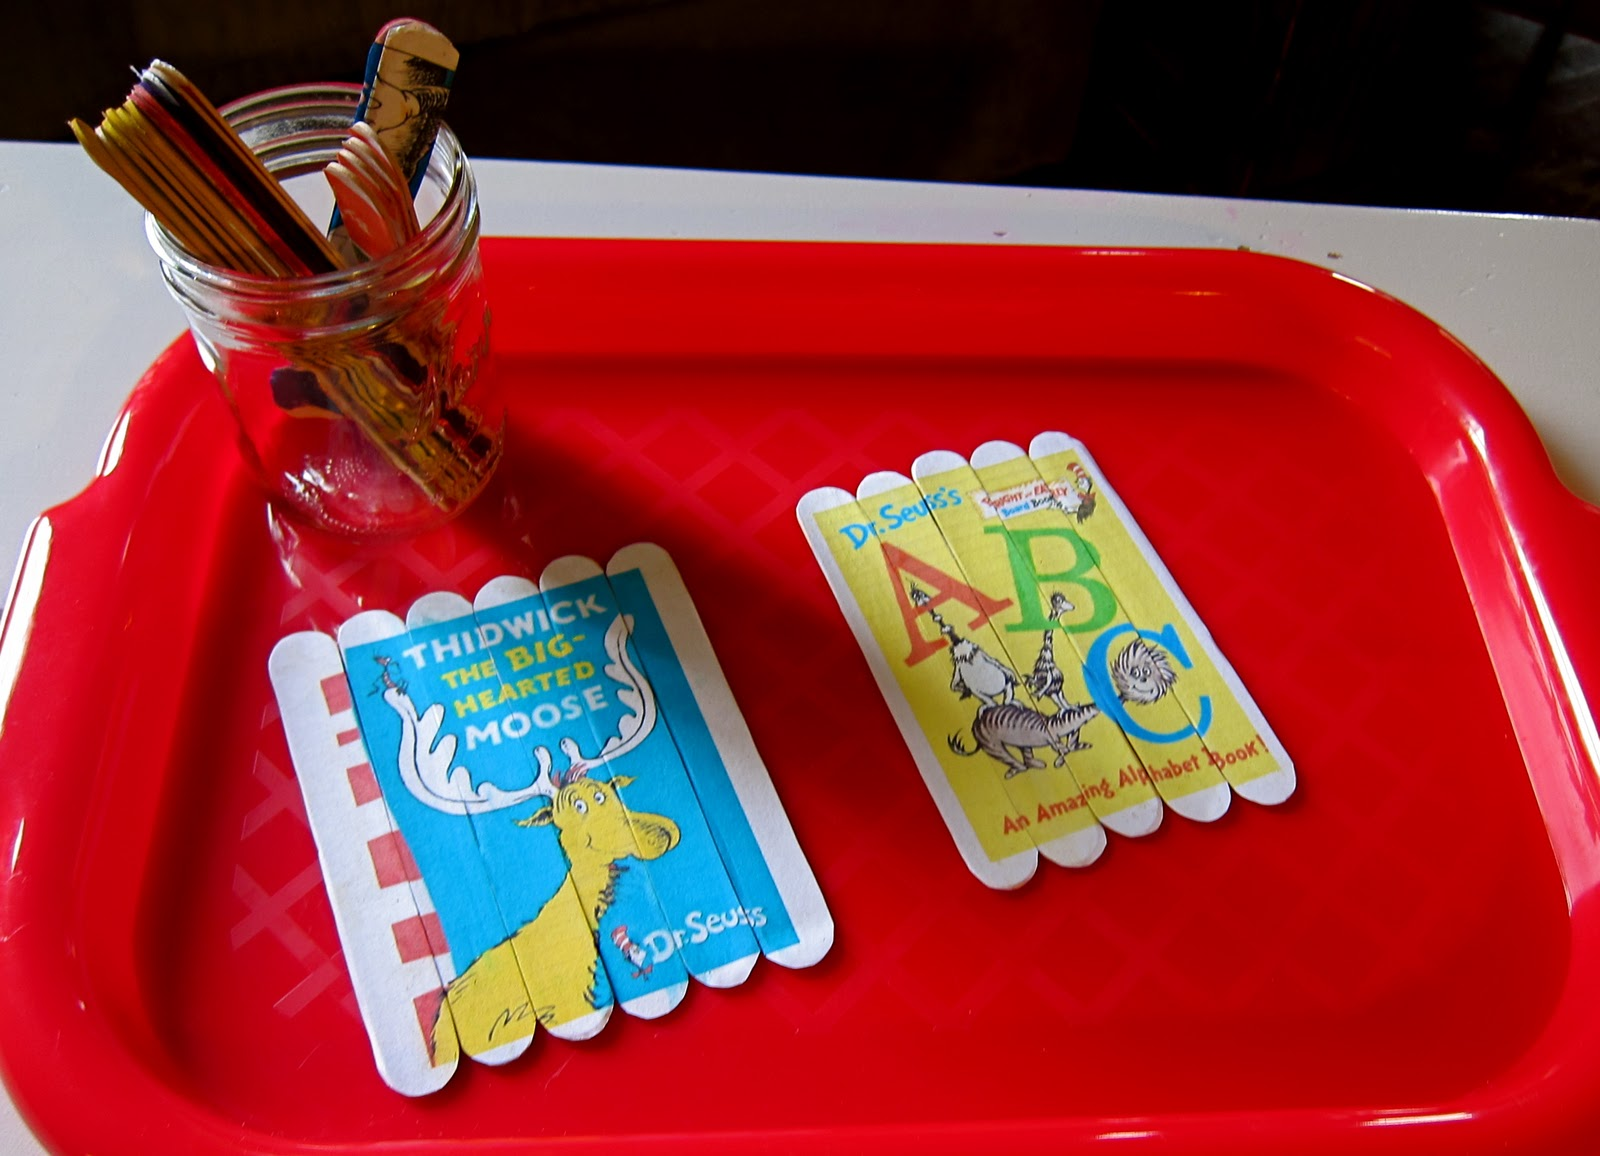 Easy dr seuss crafts - Craft Stick Book Cover Puzzles All Images Were Found Via Google Adhered With Homemade Mod Podge Skills Practiced Fine Motor Problem Solving